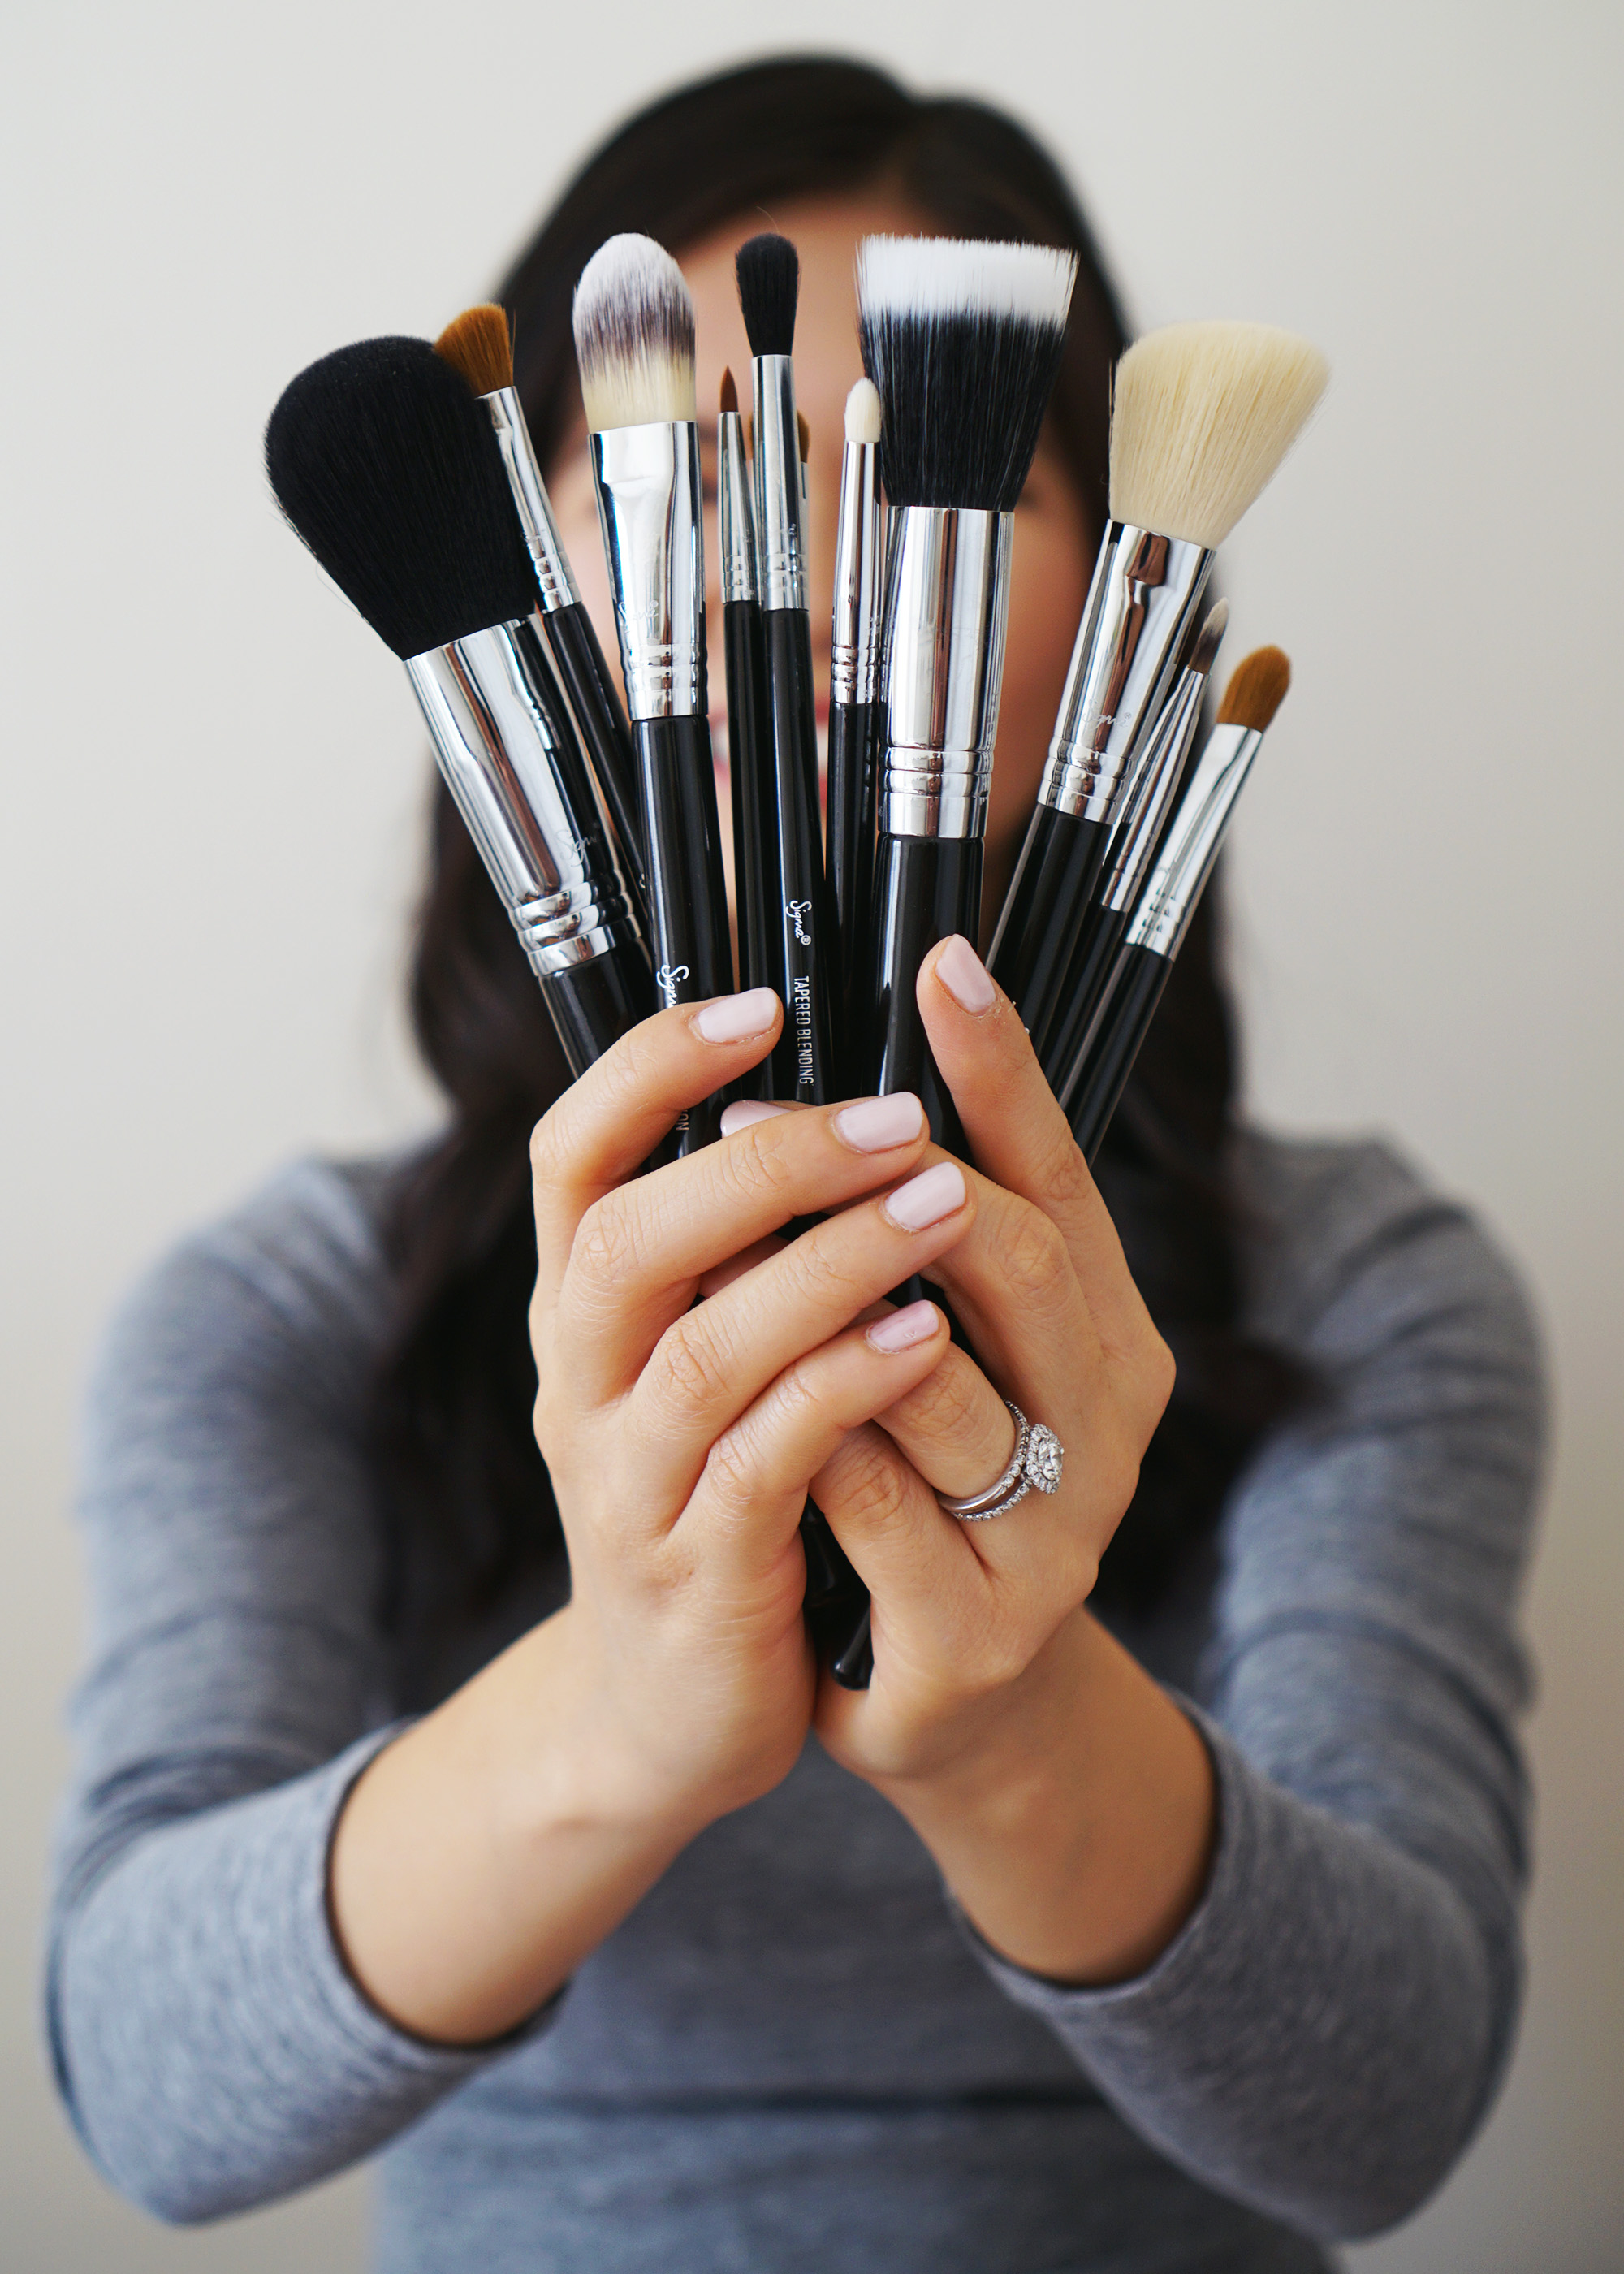 Beauty Tips: How to Choose the Right Makeup Brushes